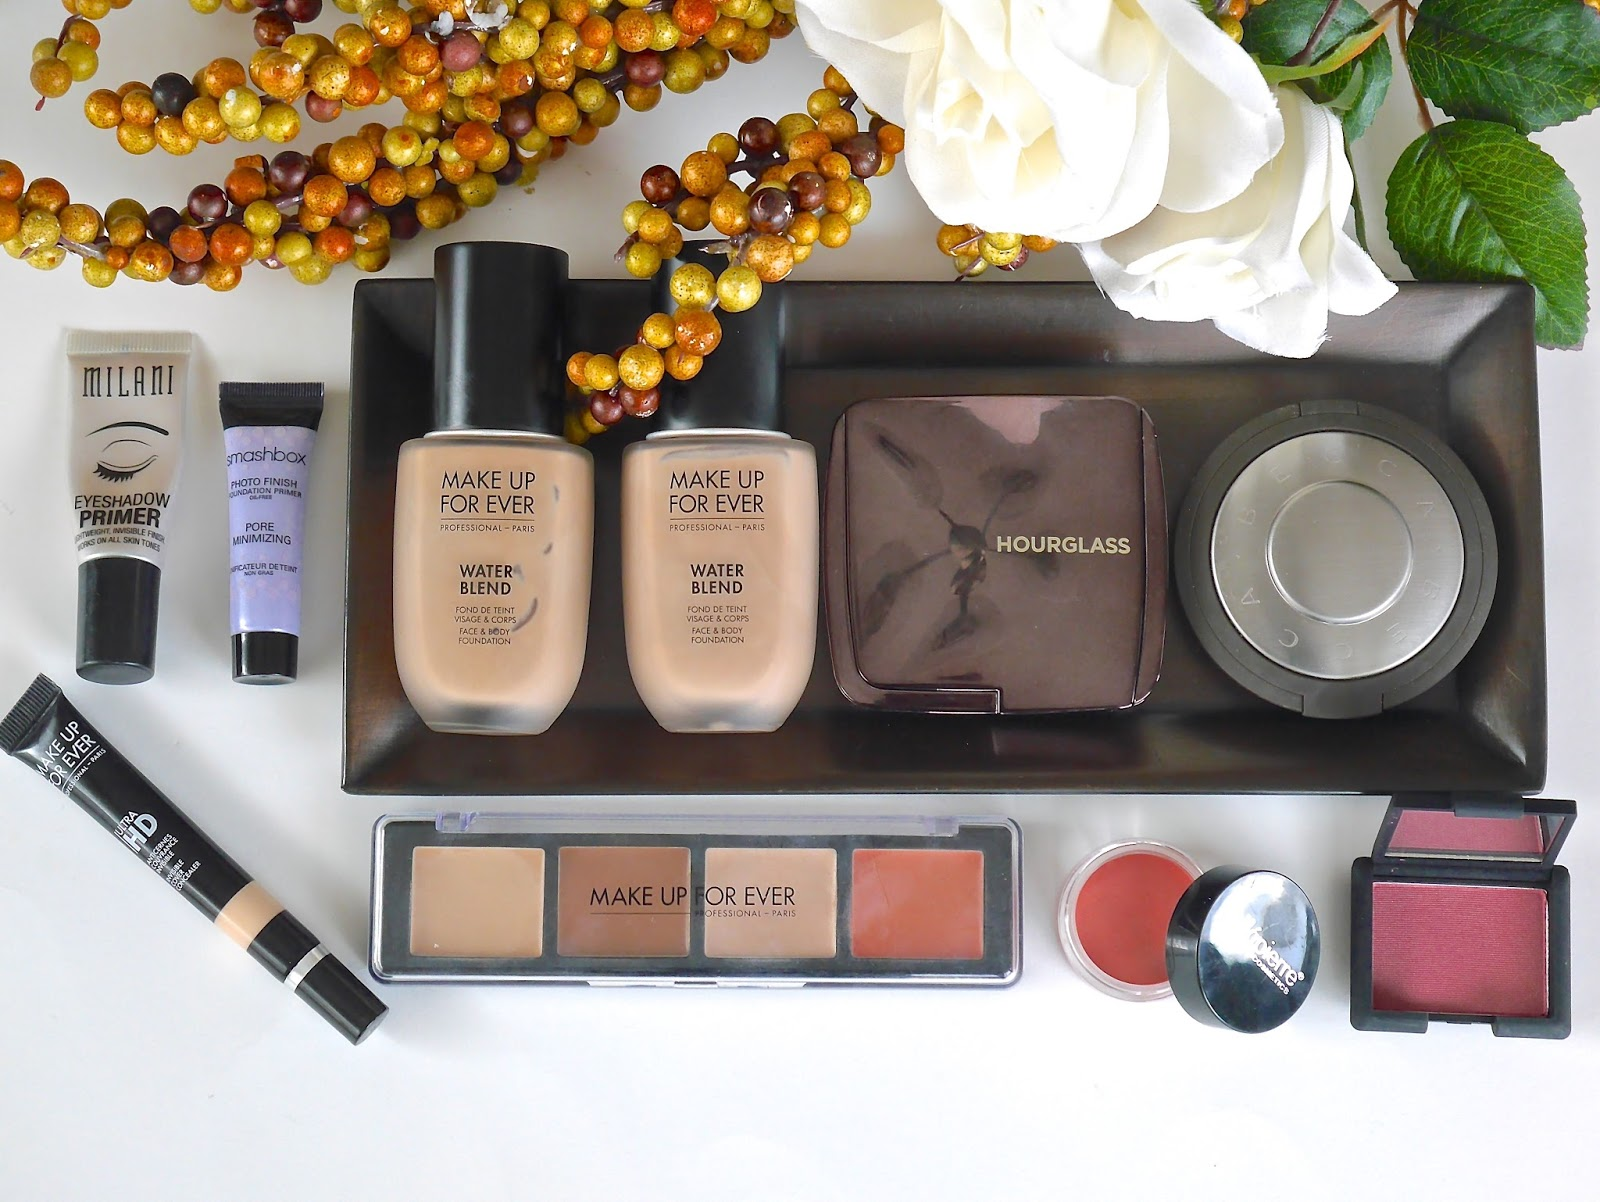 collab, blogger collab, collaboration, lipstick, Autumn, Fall, makeup